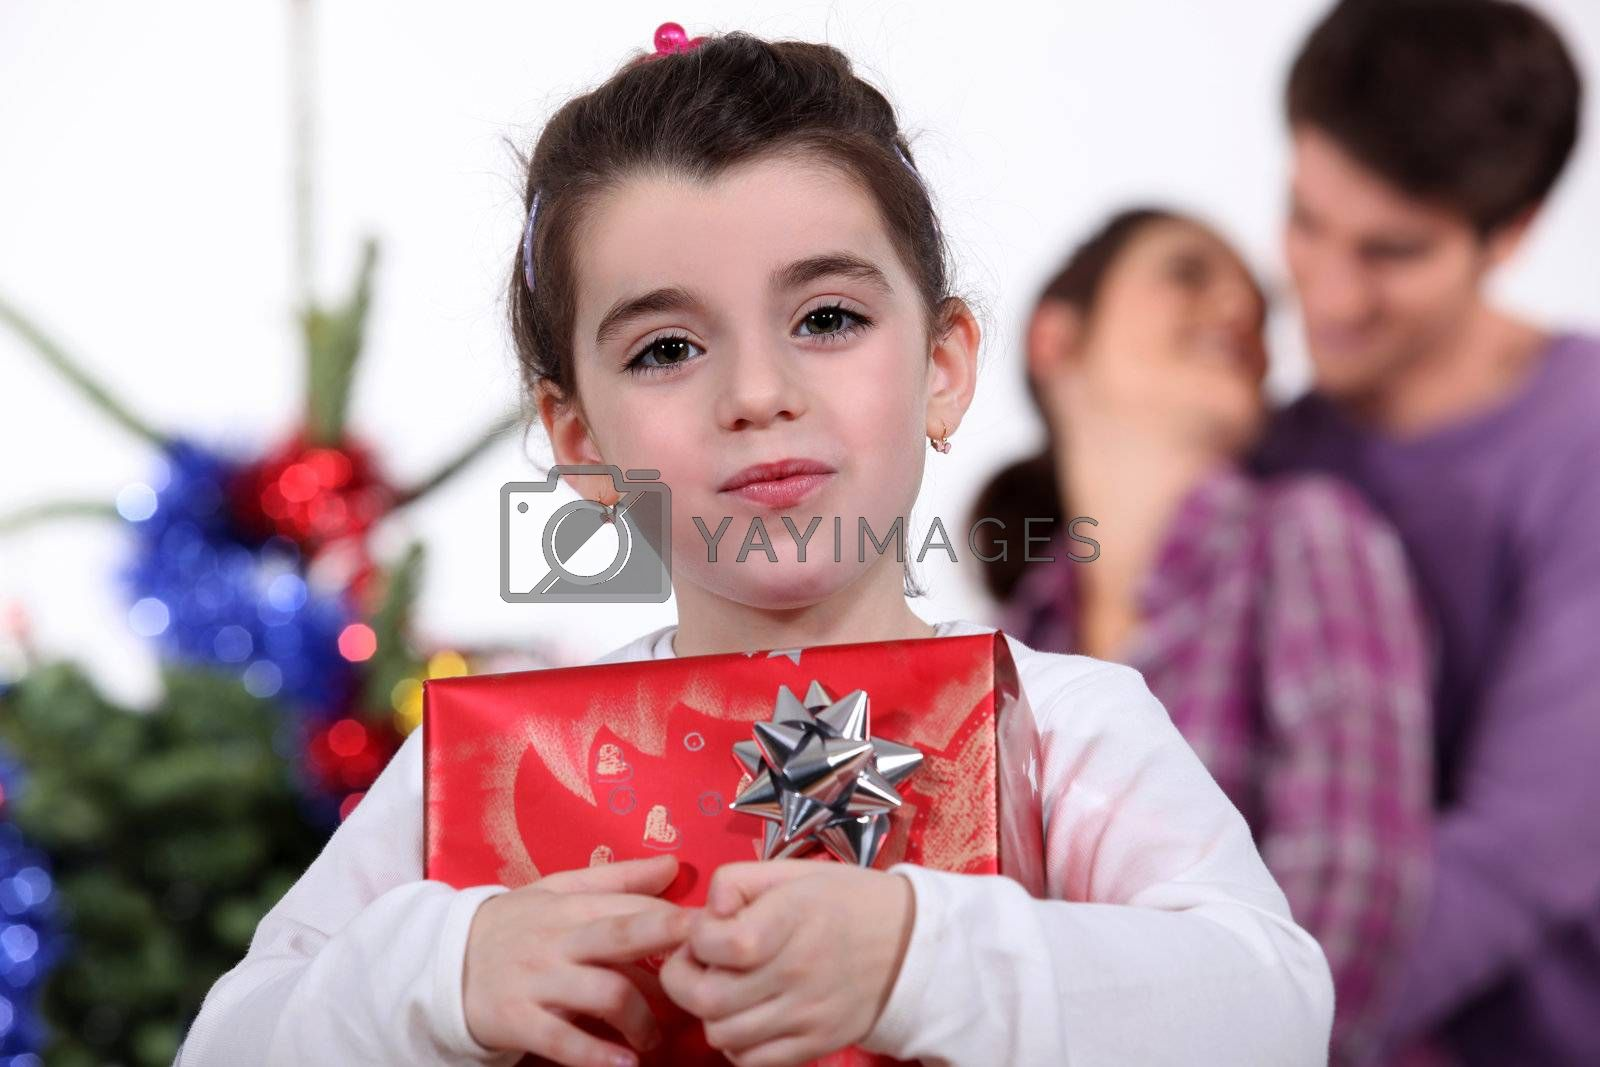 Young girl holding a gift on Christmas Day by phovoir